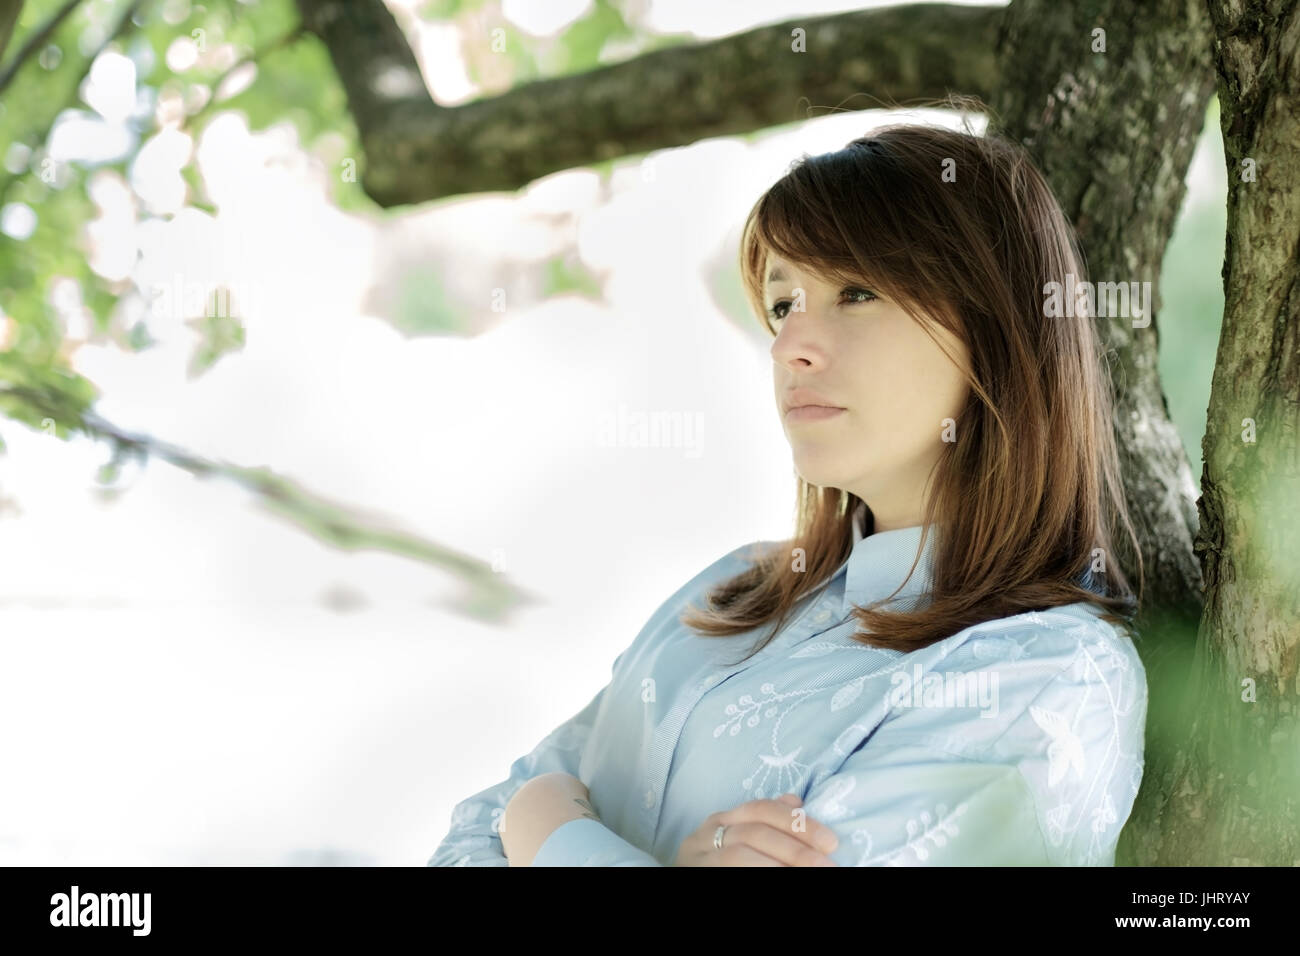 A woman leaning against a big tree alone in the park - Stock Image